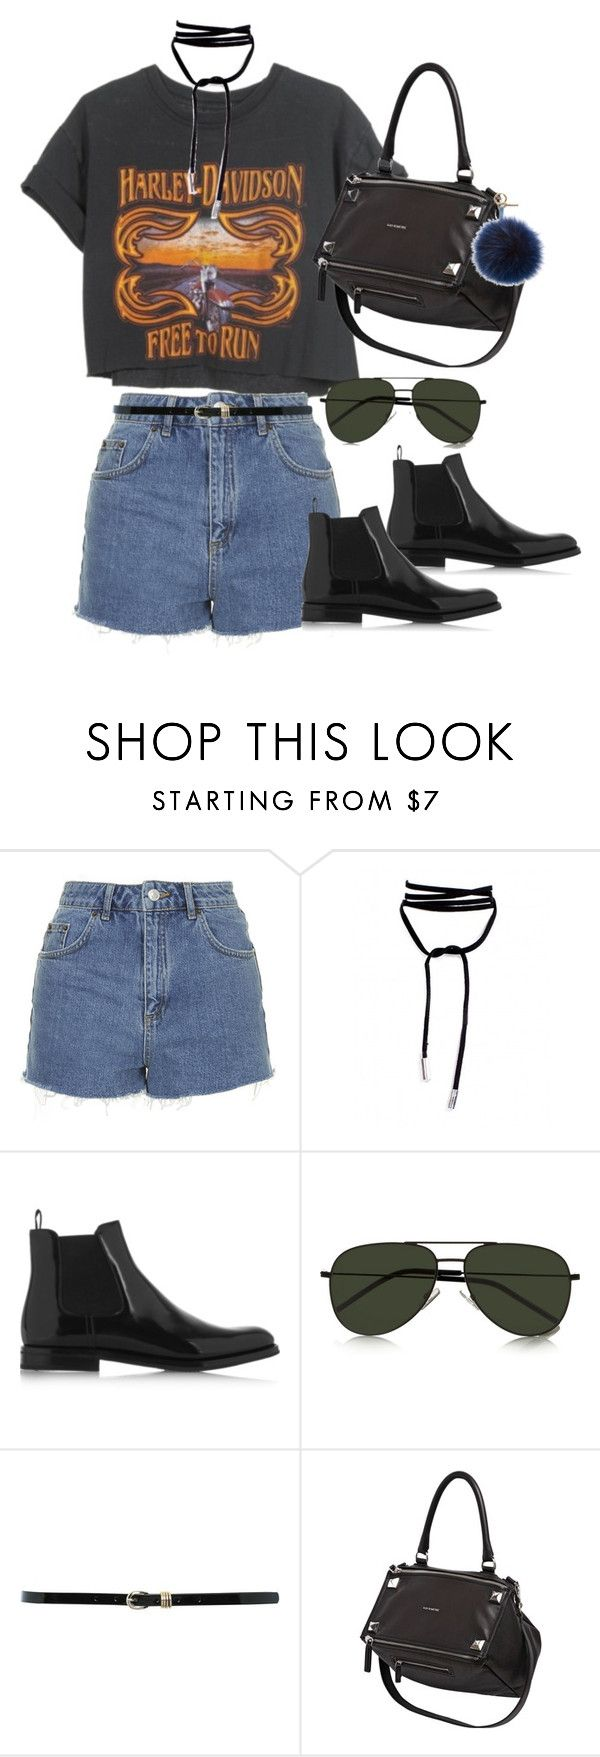 """Sem título #1211"" by oh-its-anna ❤ liked on Polyvore featuring Harley-Davidson, Topshop, Church's, Yves Saint Laurent, M&Co, Givenchy and Fendi"